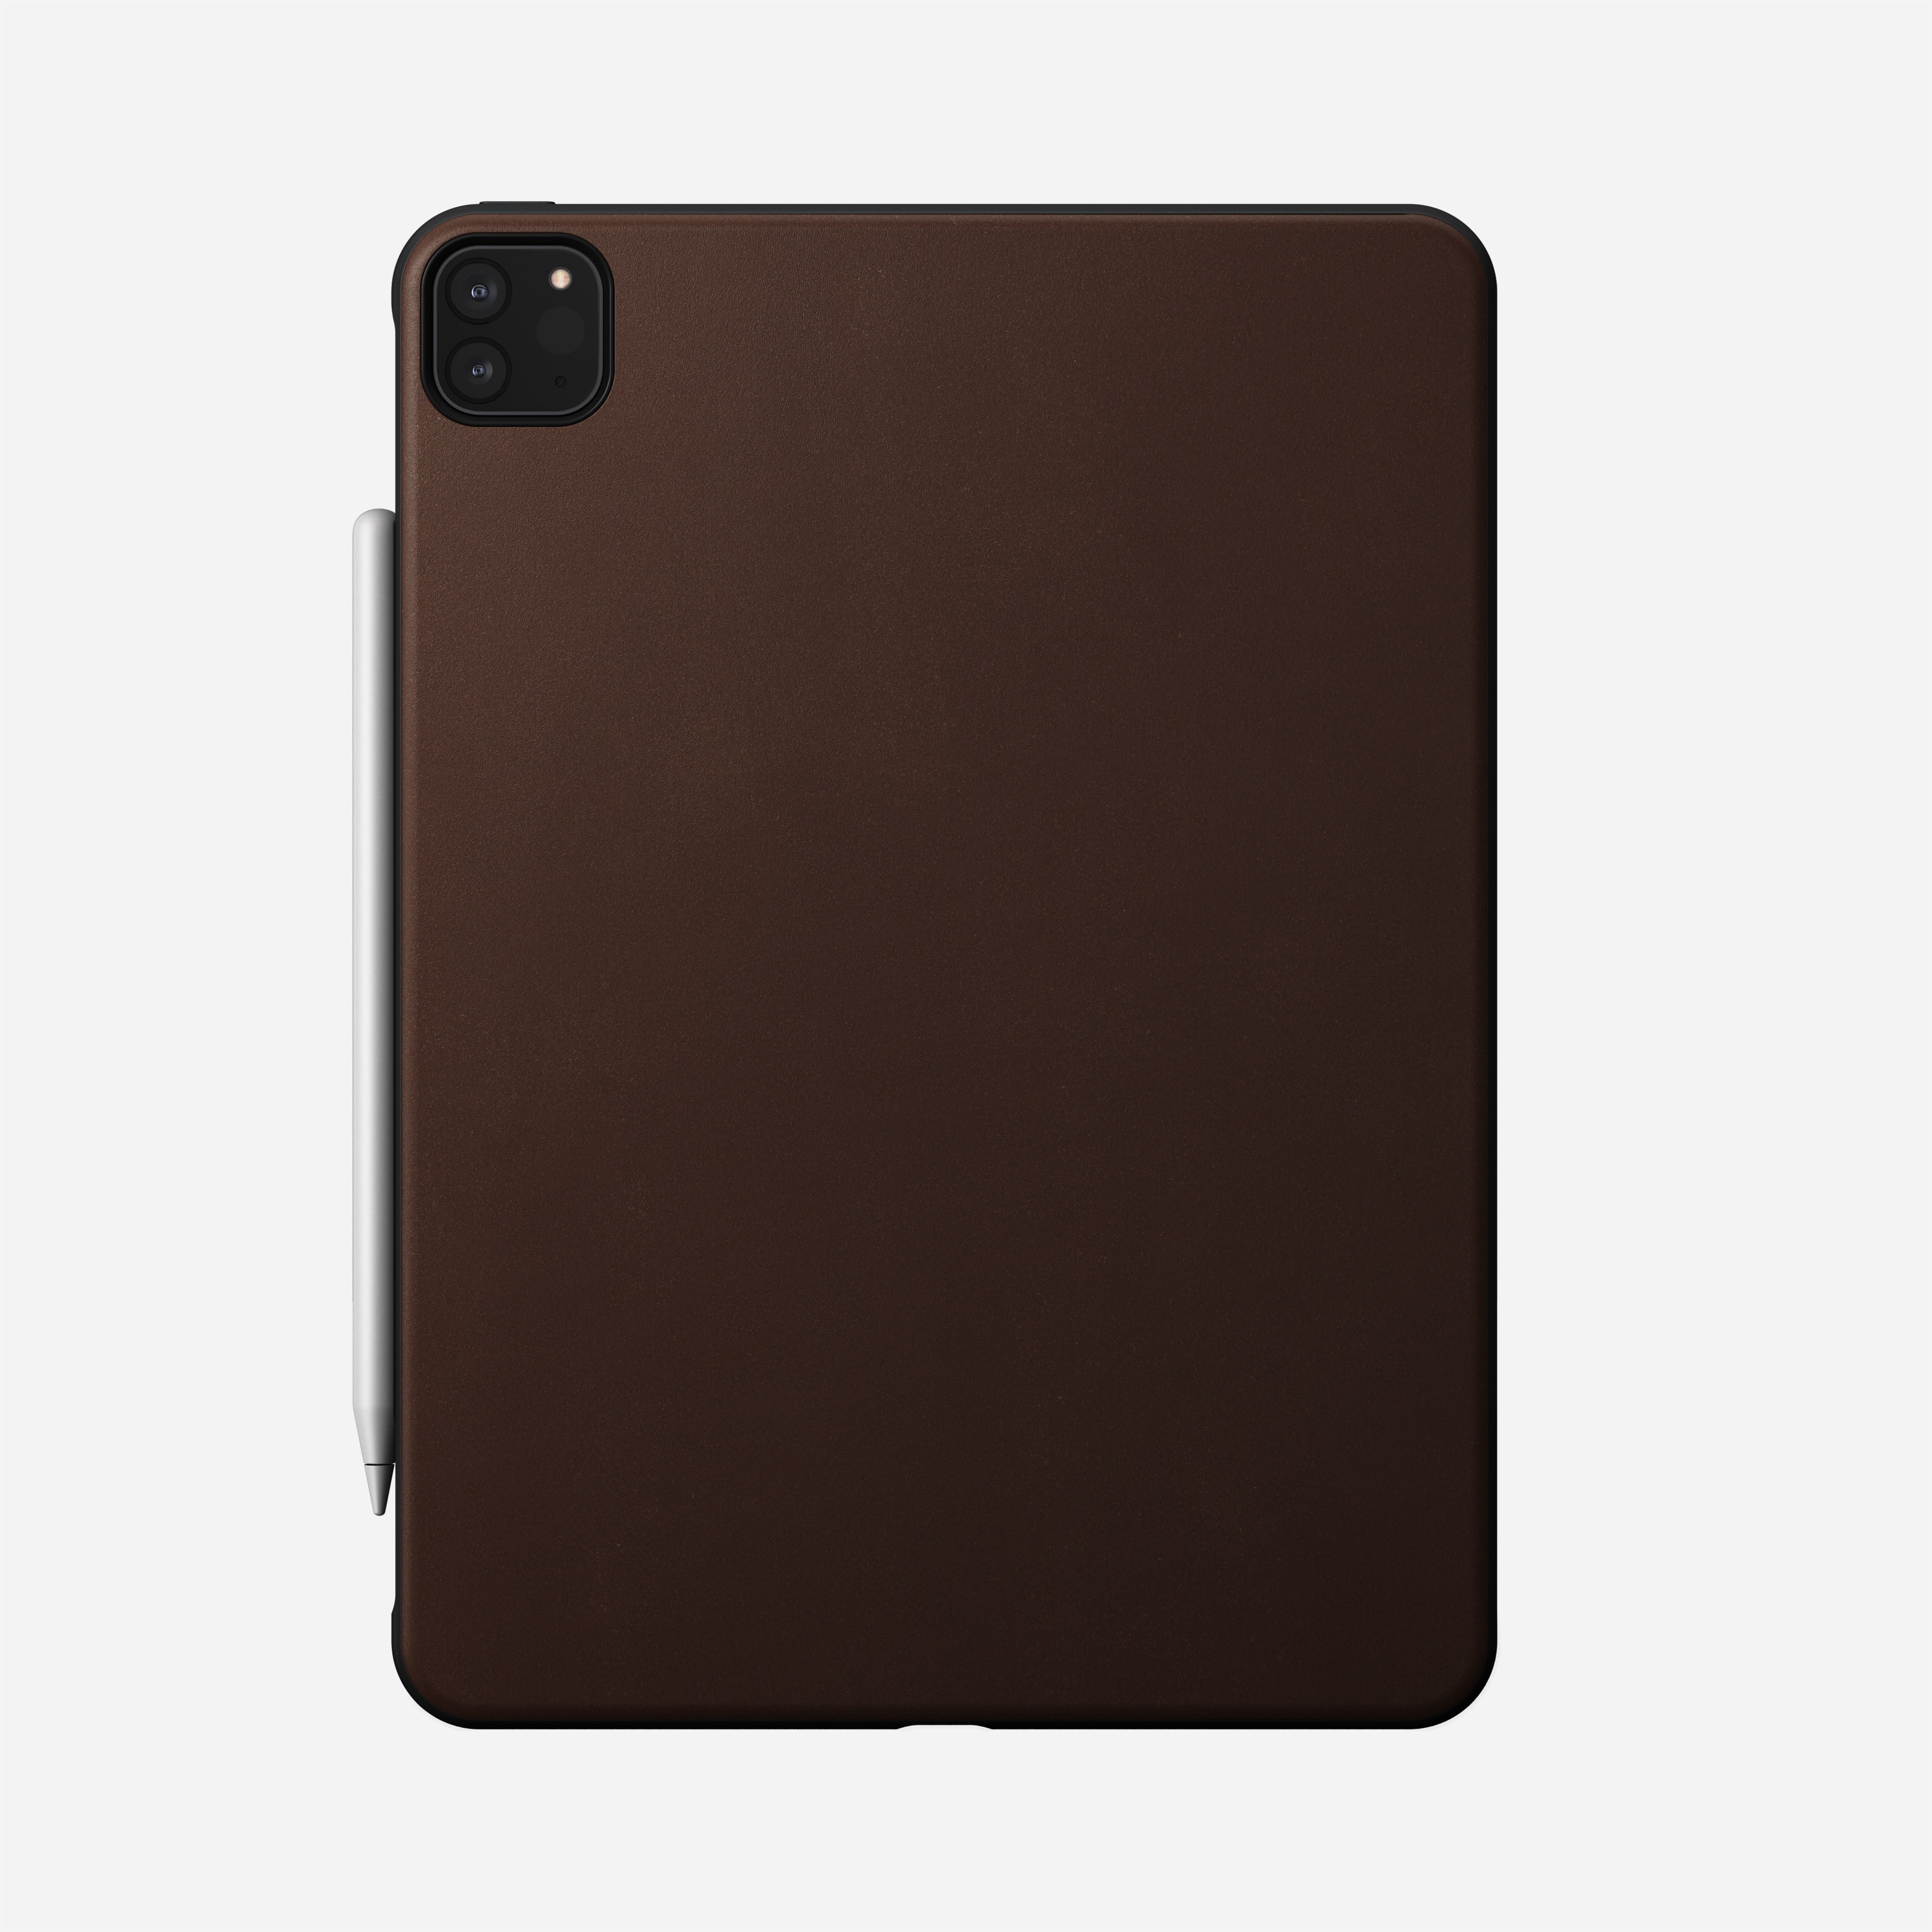 Rugged case horween leather rustic brown ipad pro 11 inch 2nd generation